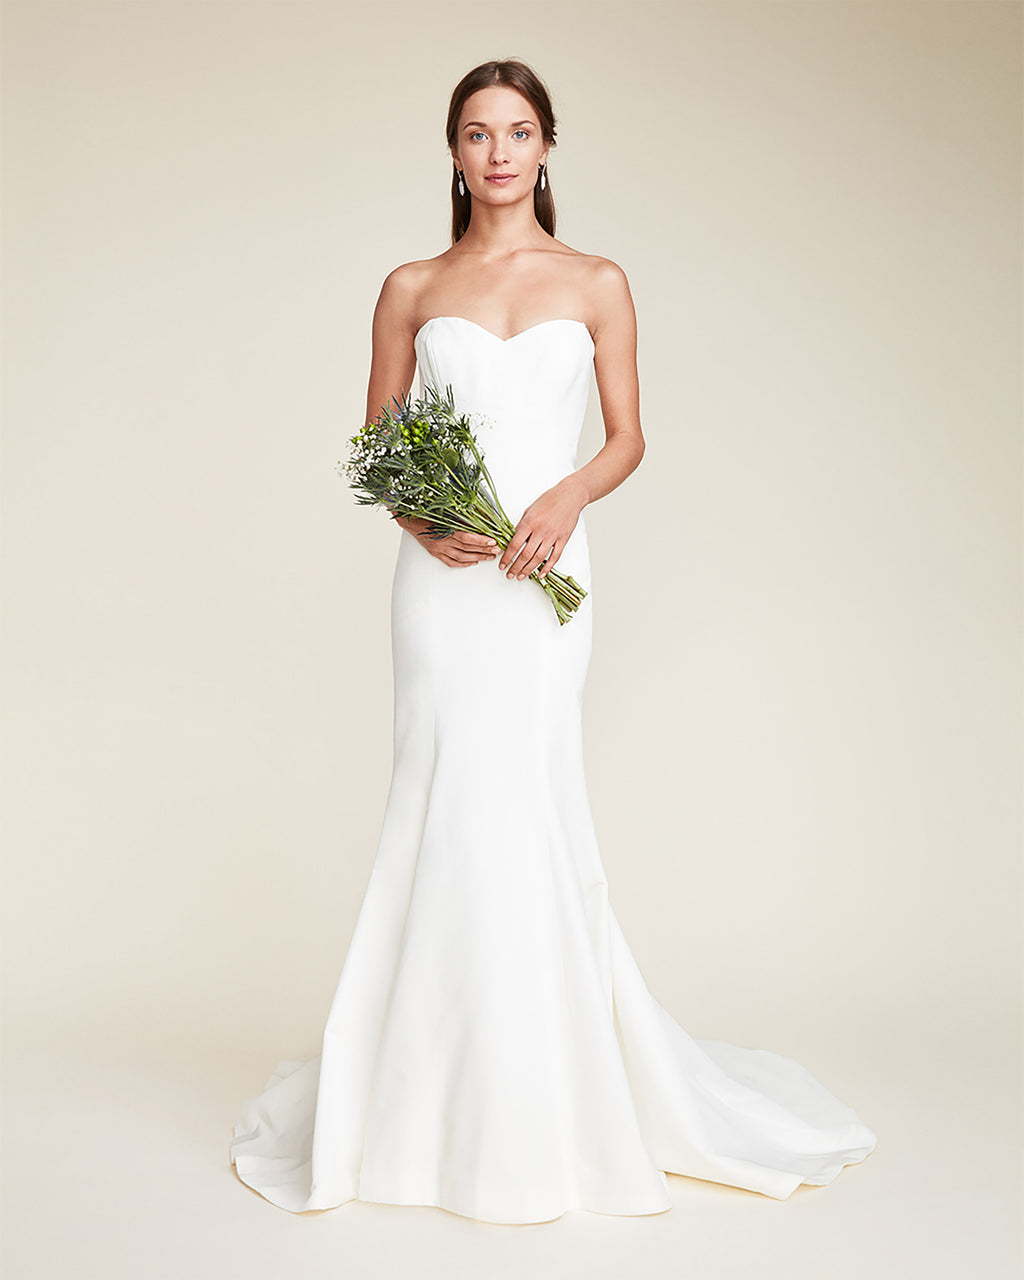 EO0009 - DAKOTA GOWN - bridal collection - bridal - This strapless bridal gown is elegant and classically simple. The sweetheart neckline and fitted bodice are figure-flattering and create a streamlined look. A fishtail train is the finishing touch to this sophisticated and modern gown.~fsbr